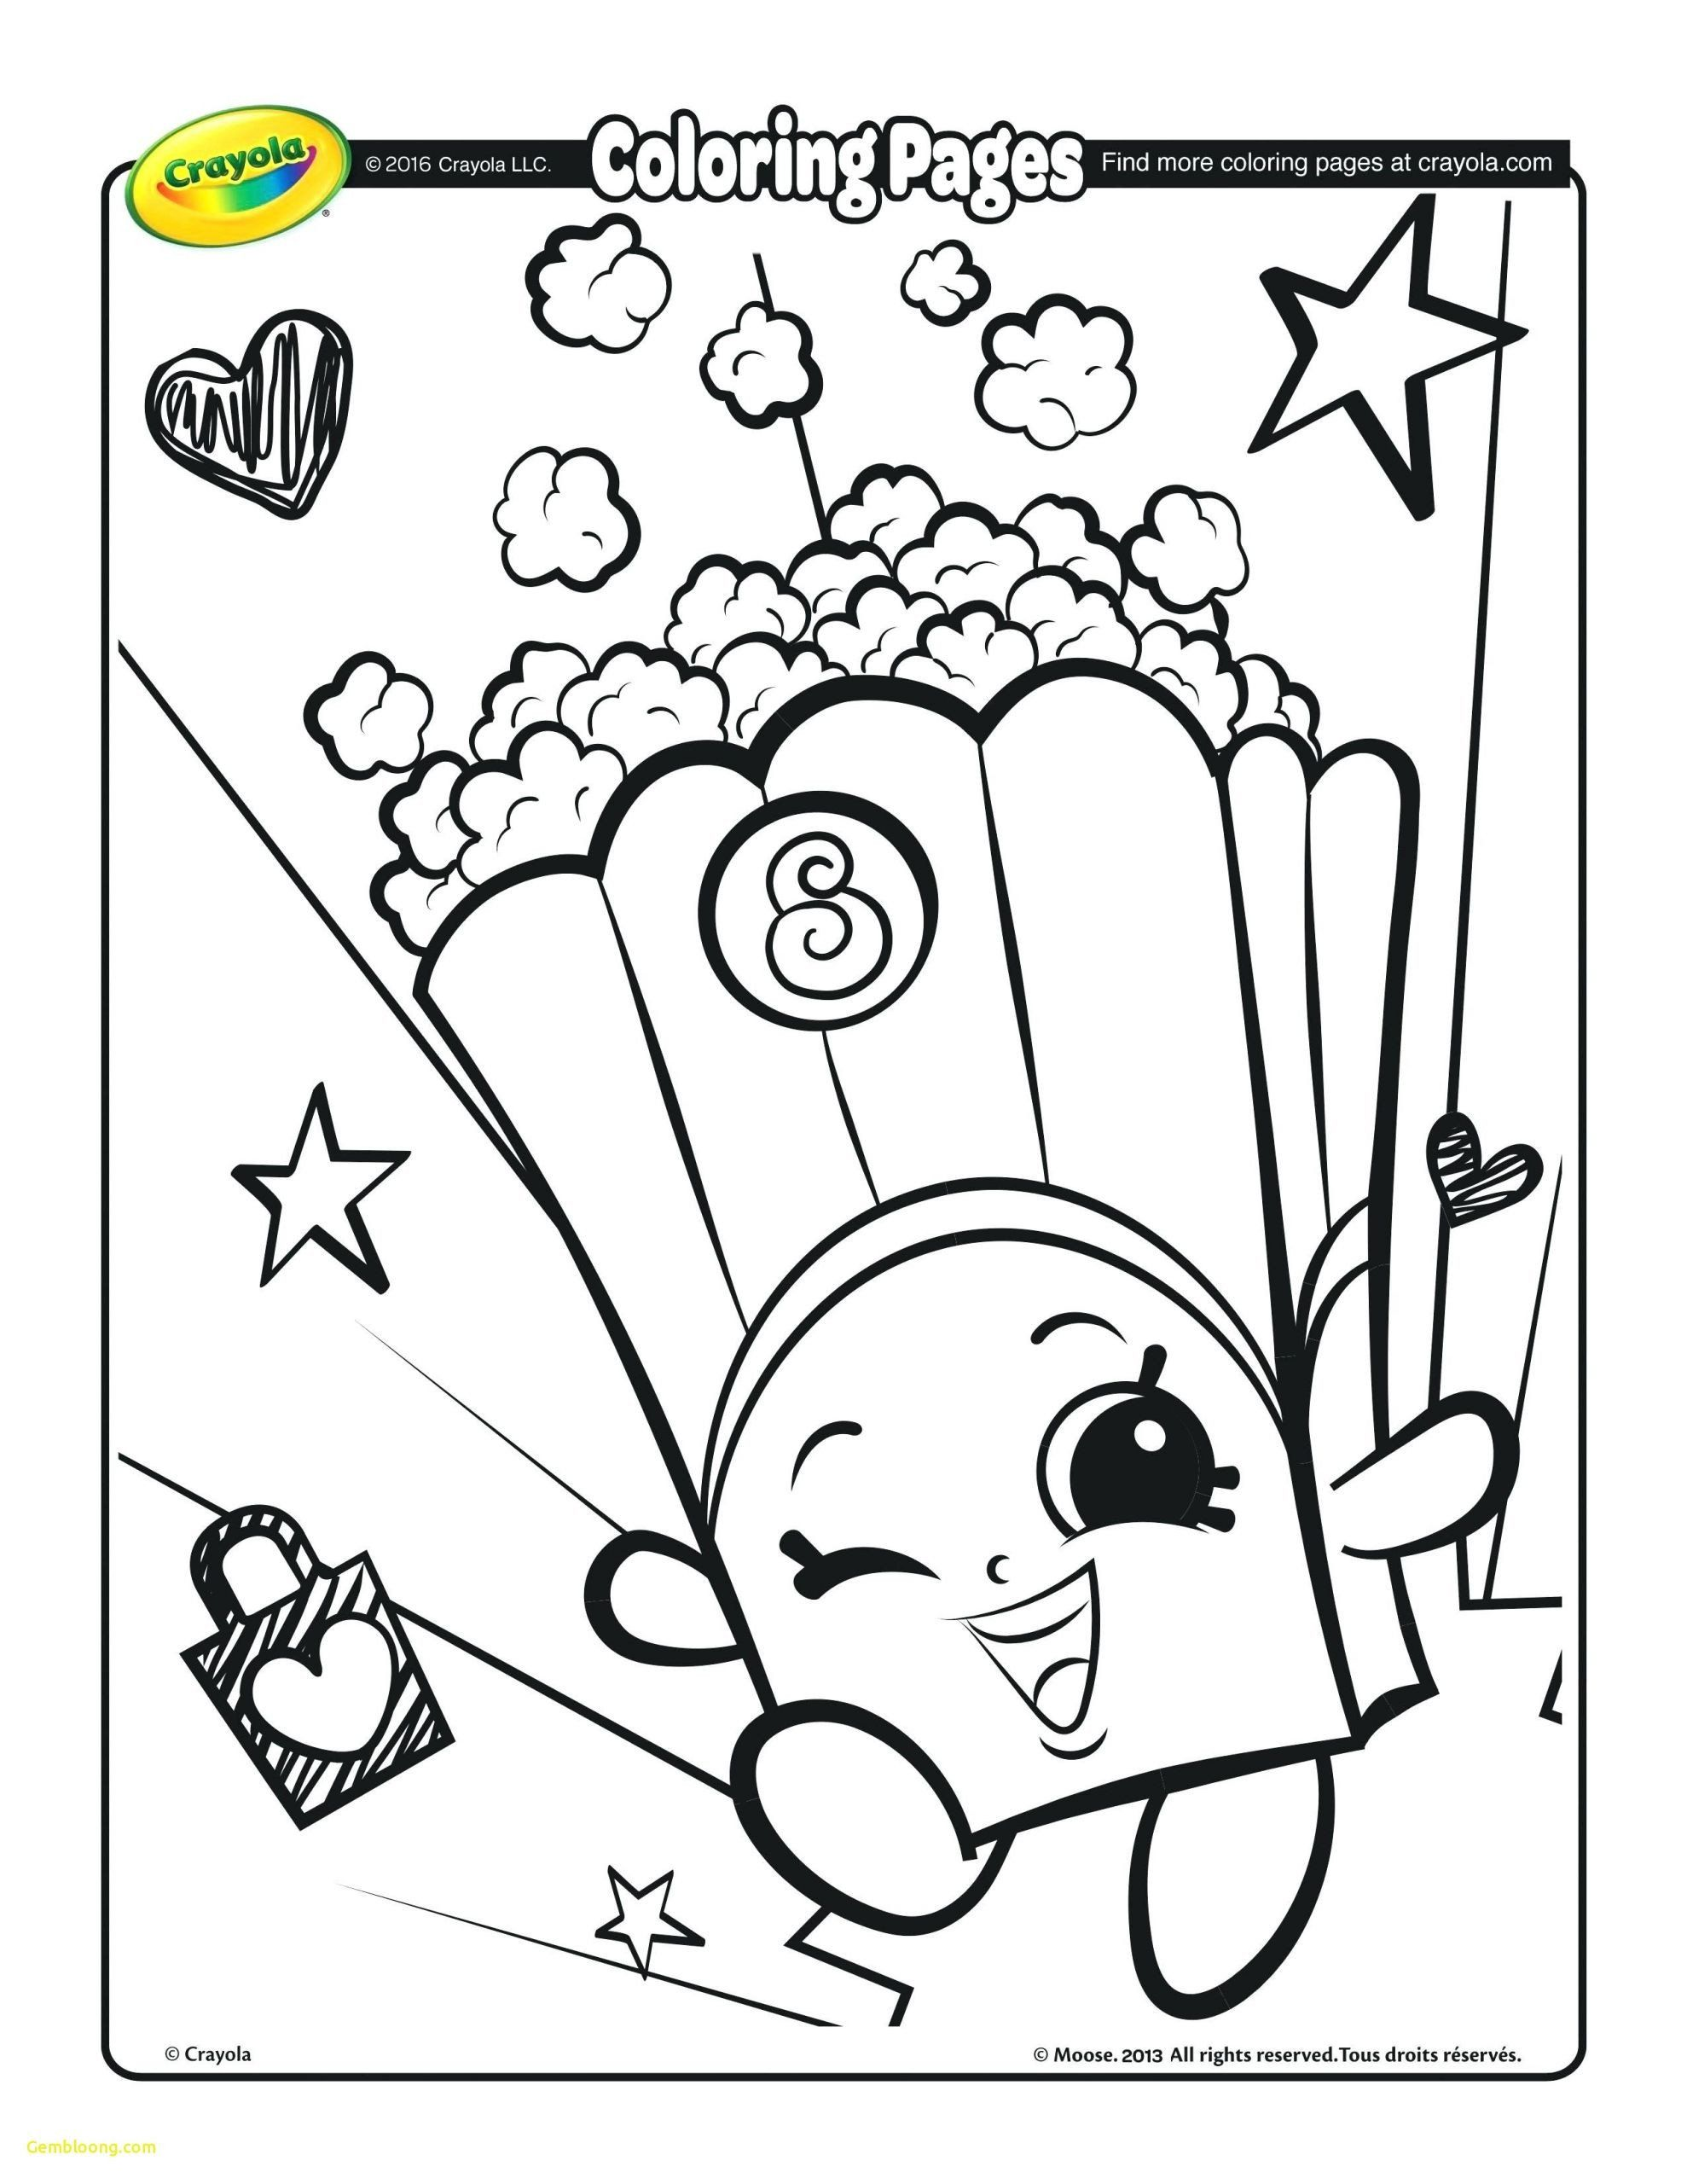 Free Coloring Page Com Coloring Pages Crayola Free Coloring Pages Unique Coloring Shopkins Colouring Pages Christmas Coloring Pages Crayola Coloring Pages